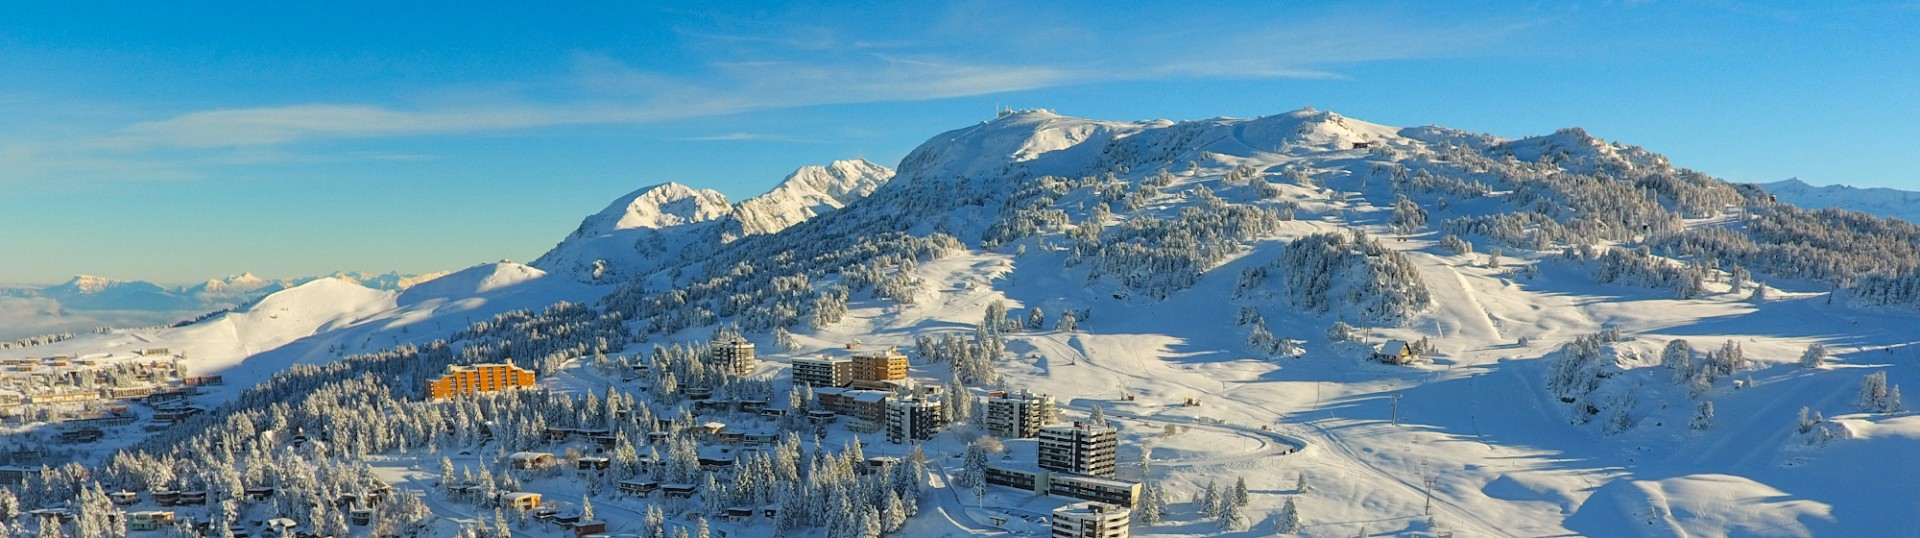 chamrousse-hebergement-centrale-reservation-2582